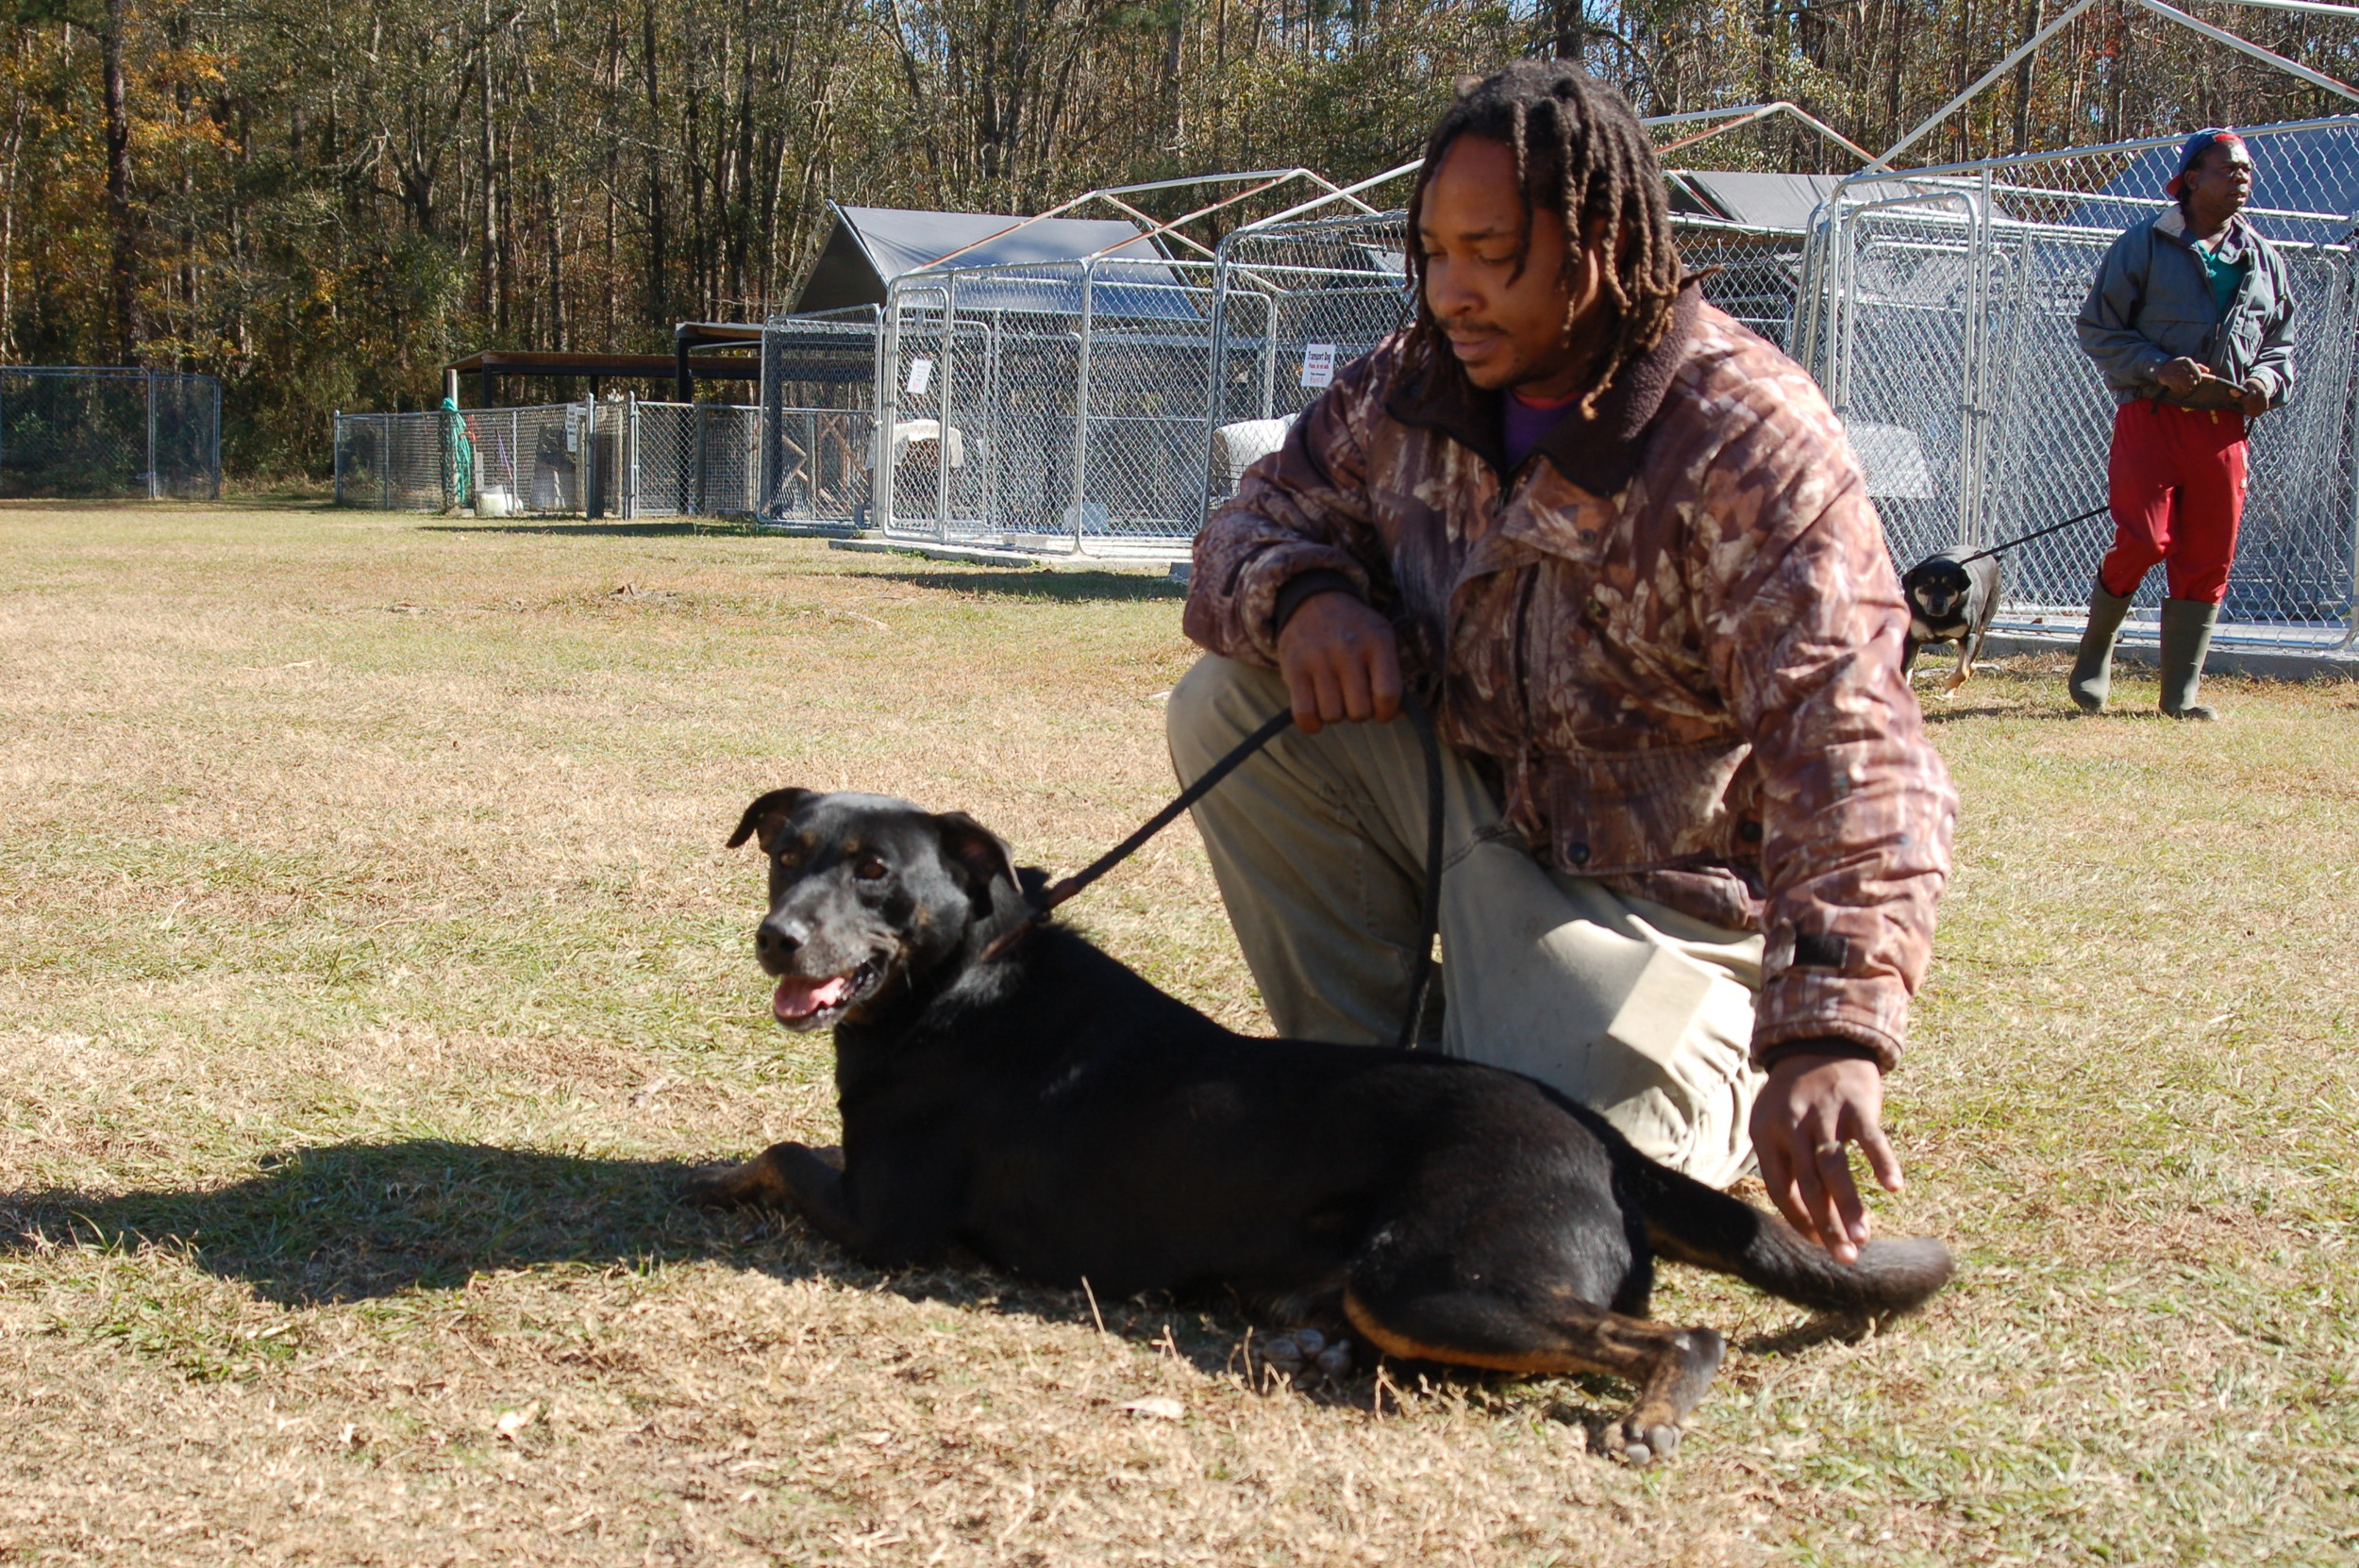 Animal shelter workers cope with 'compassion fatigue ...  |Animal Rescue Worker